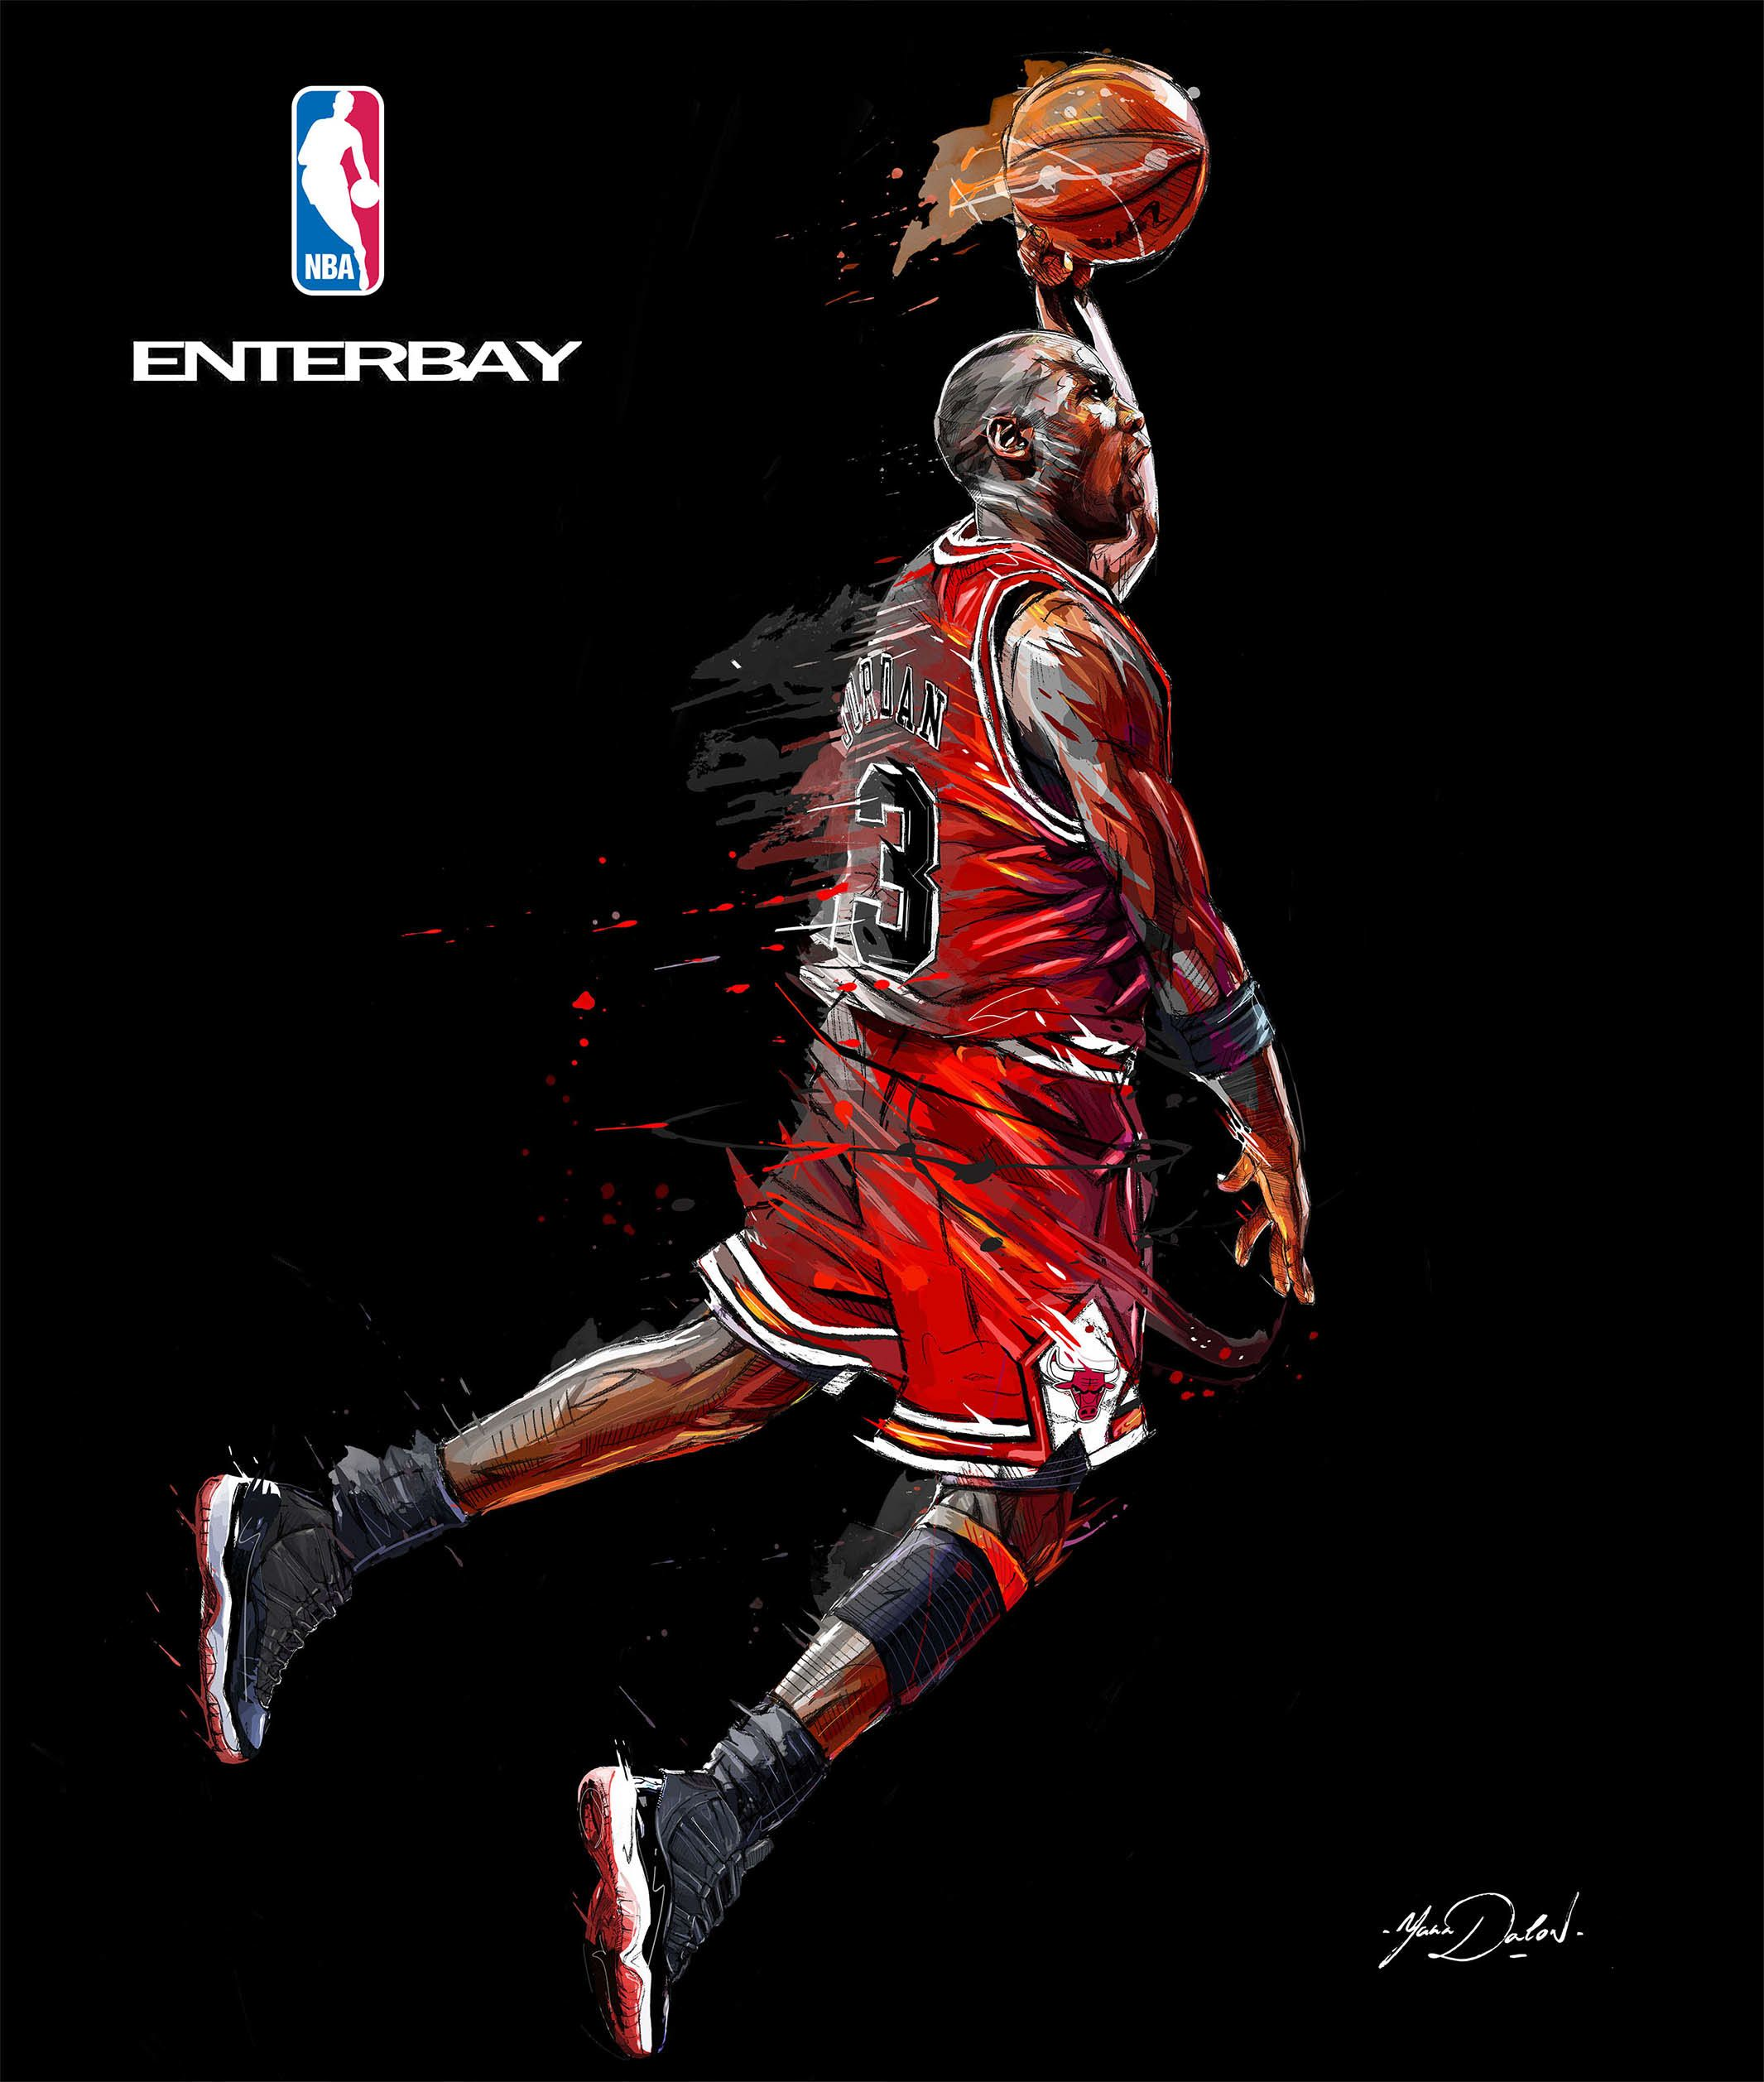 My collaboration with the brand ENTERBAY and the NBA